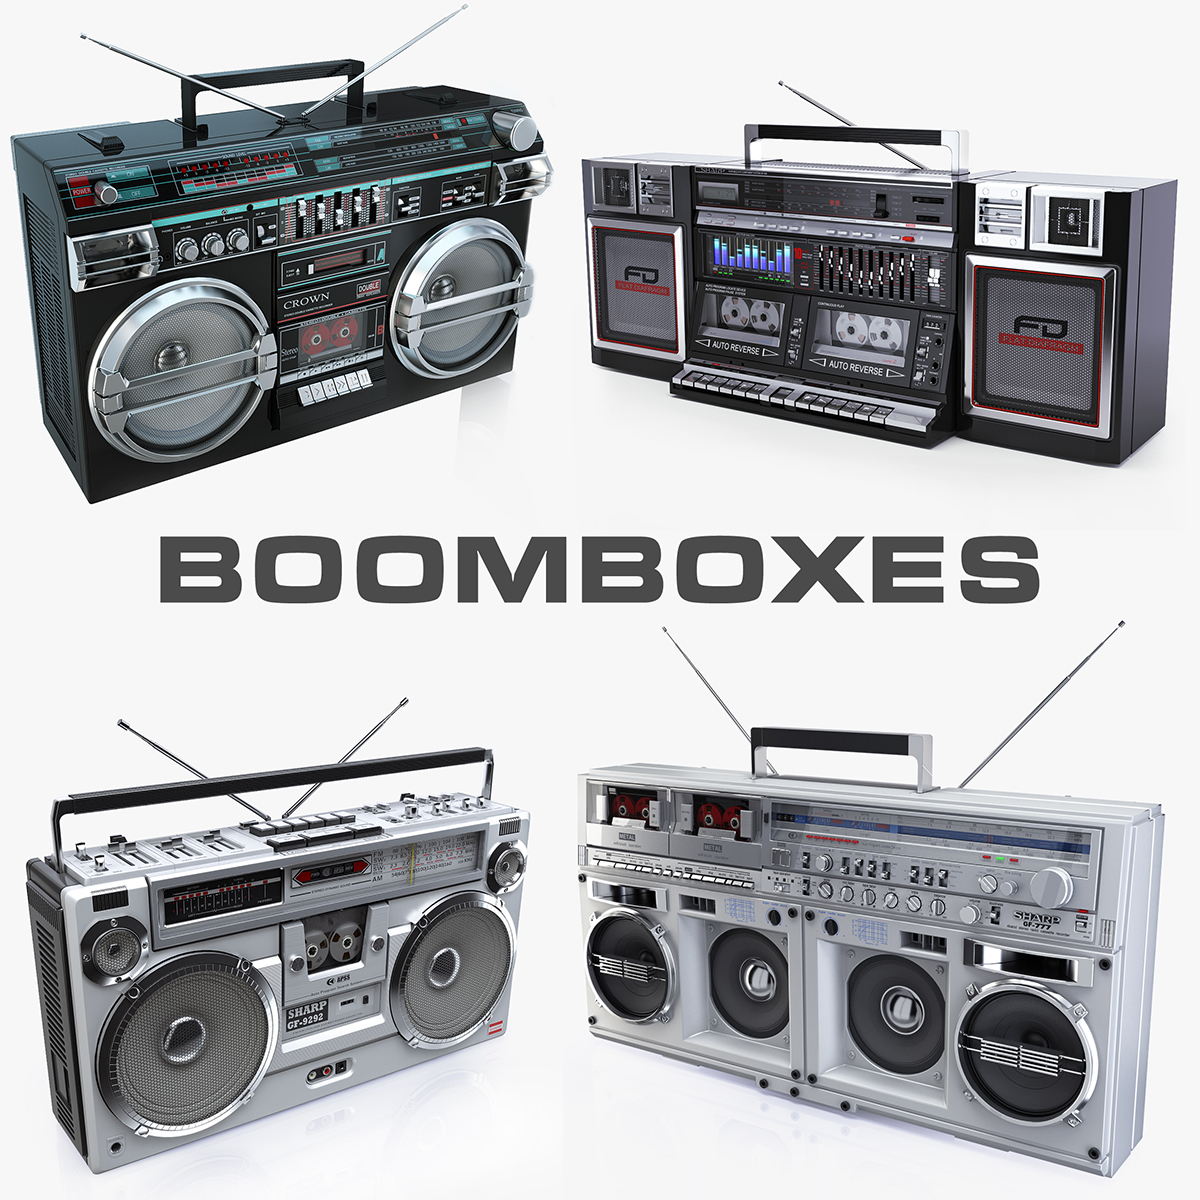 Image result for boomboxes